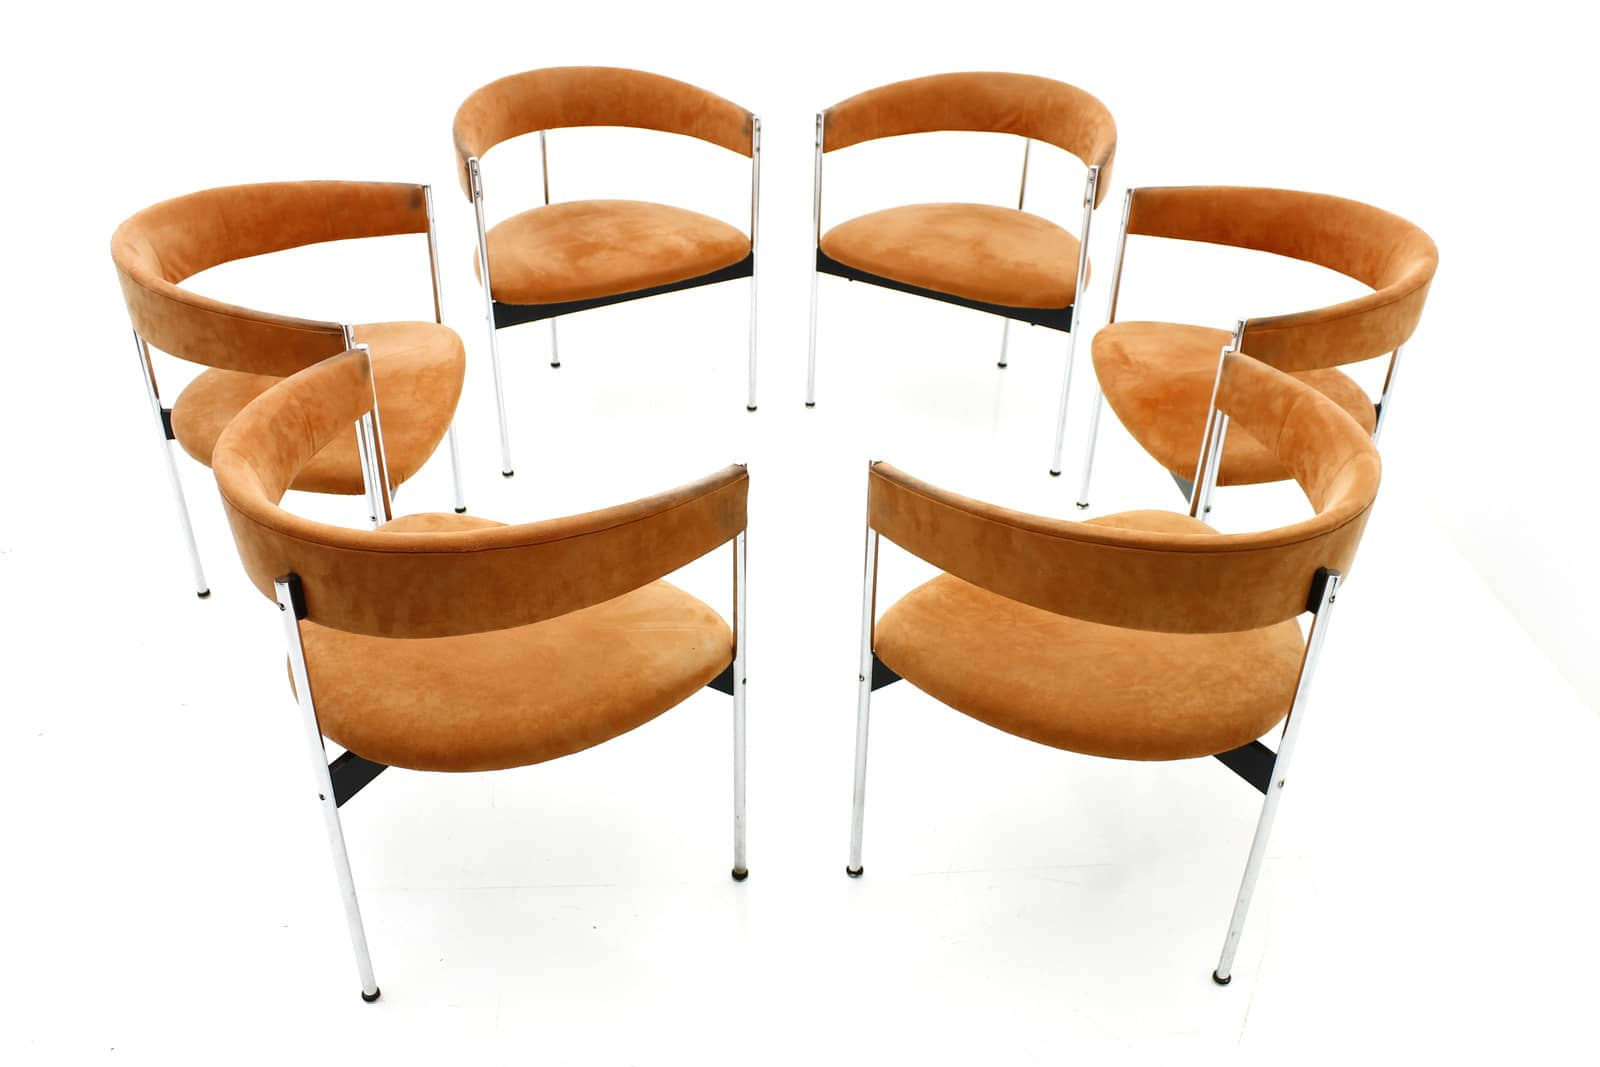 6x Dining Chairs by Dieter Wäckerlin for Idealheim, Switzerland 1960s